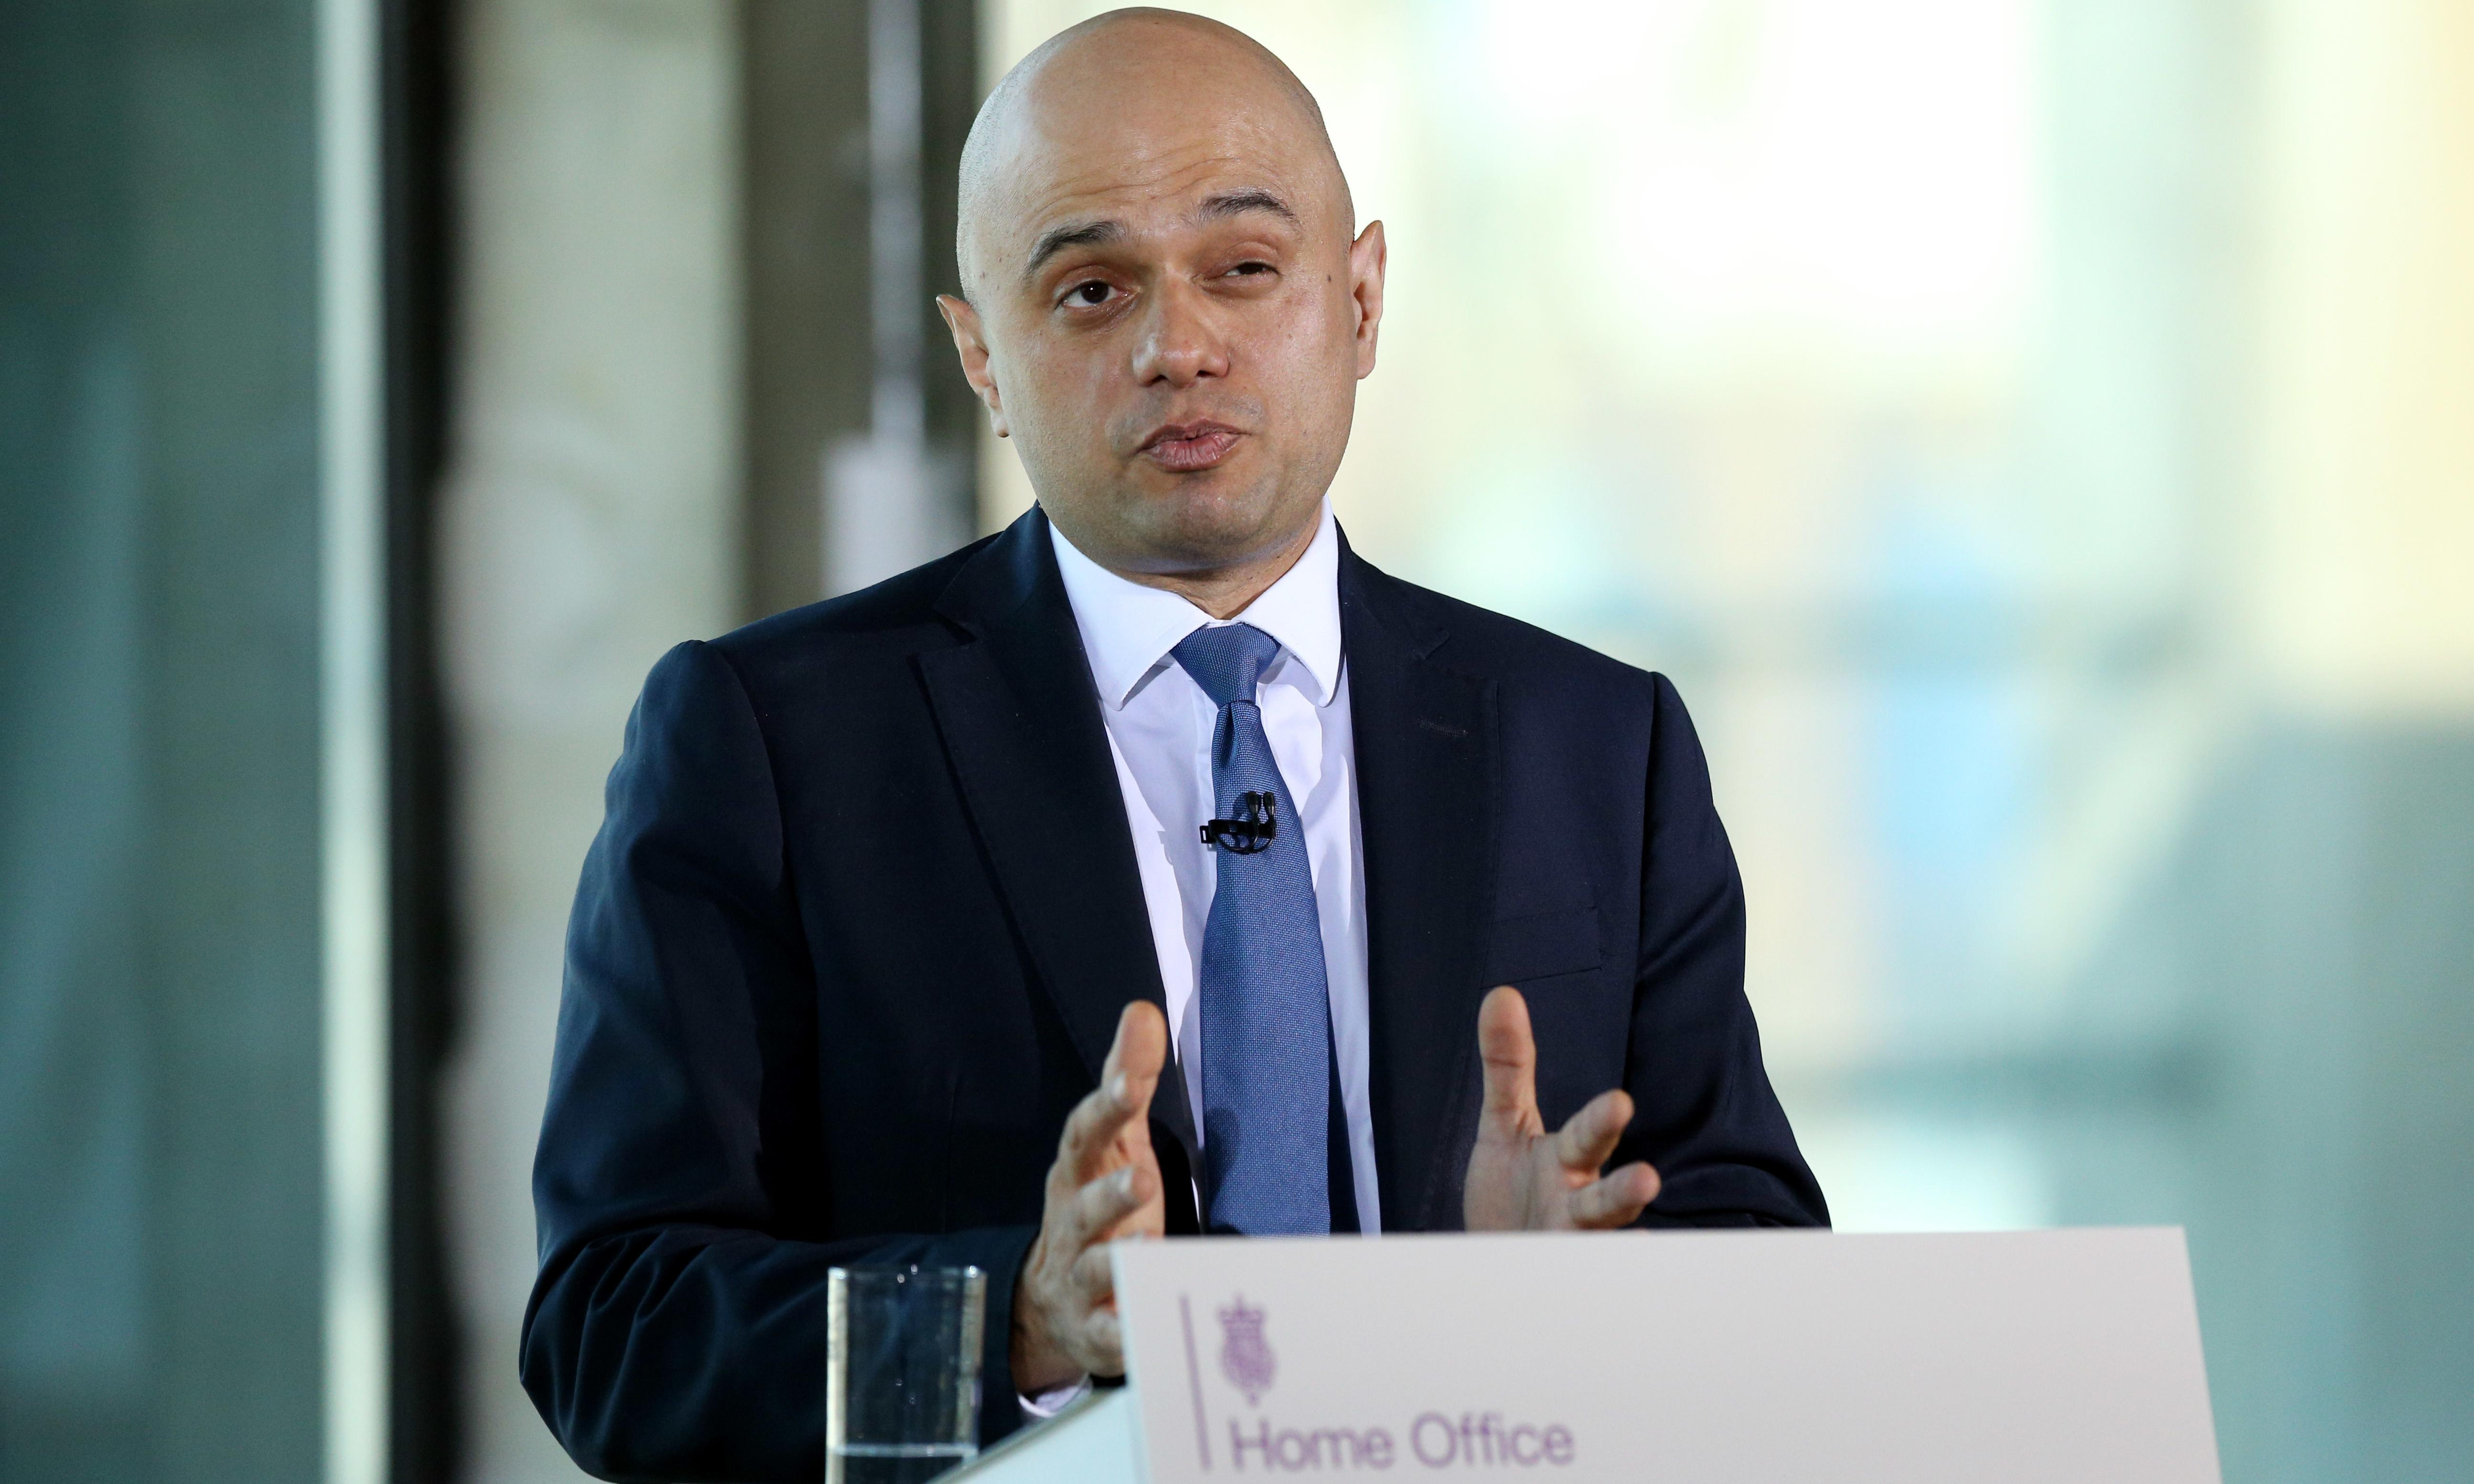 Sajid Javid must act now to right the wrongs of the latest immigration scandal